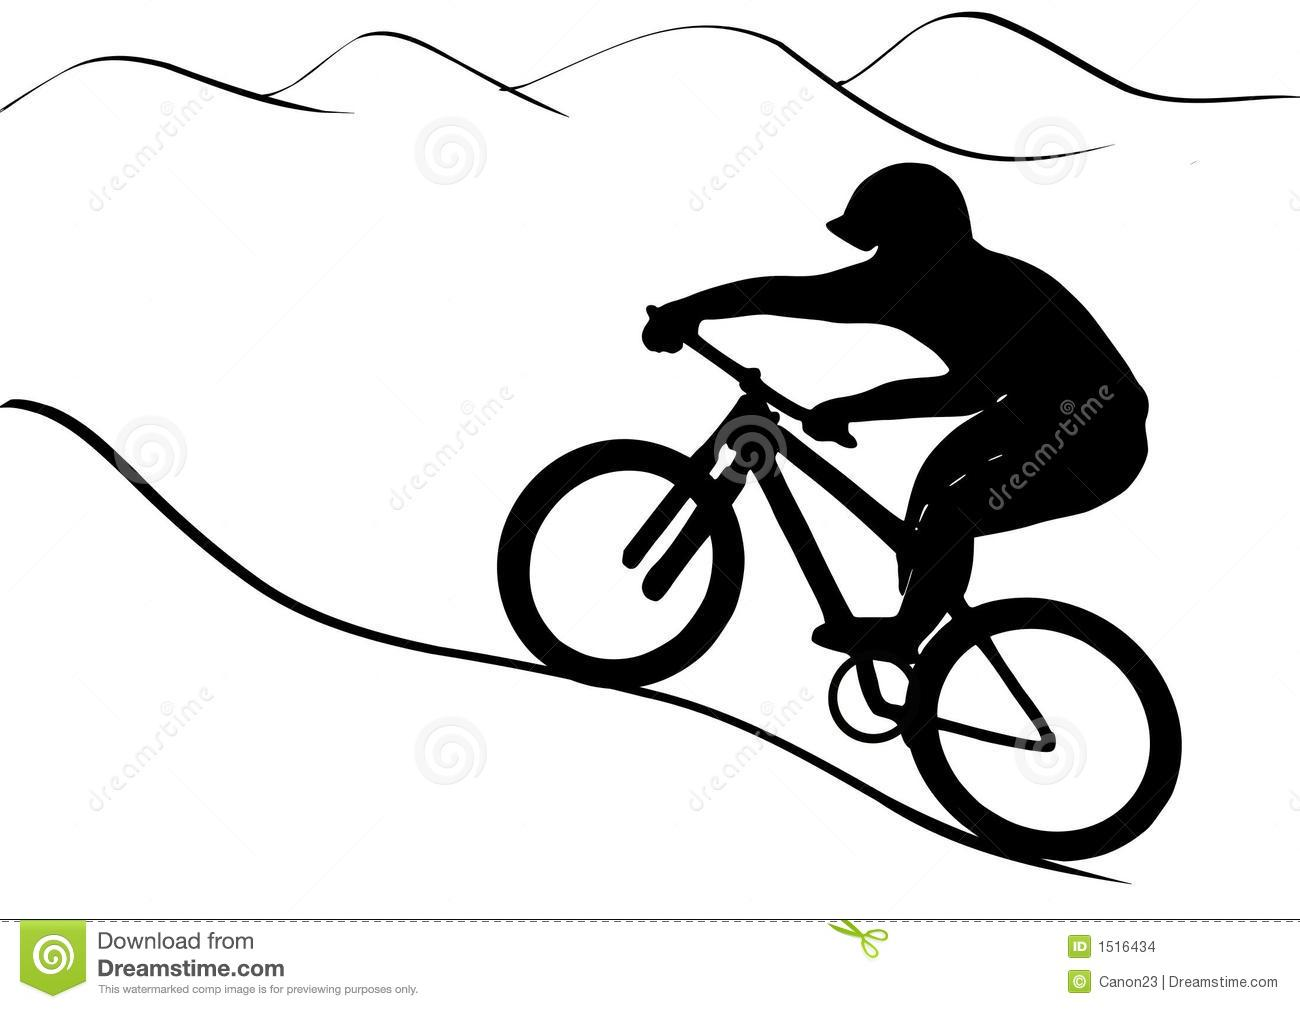 Mountain bike ride clipart black and white clipart freeuse library Biking Clipart | Free download best Biking Clipart on ... clipart freeuse library